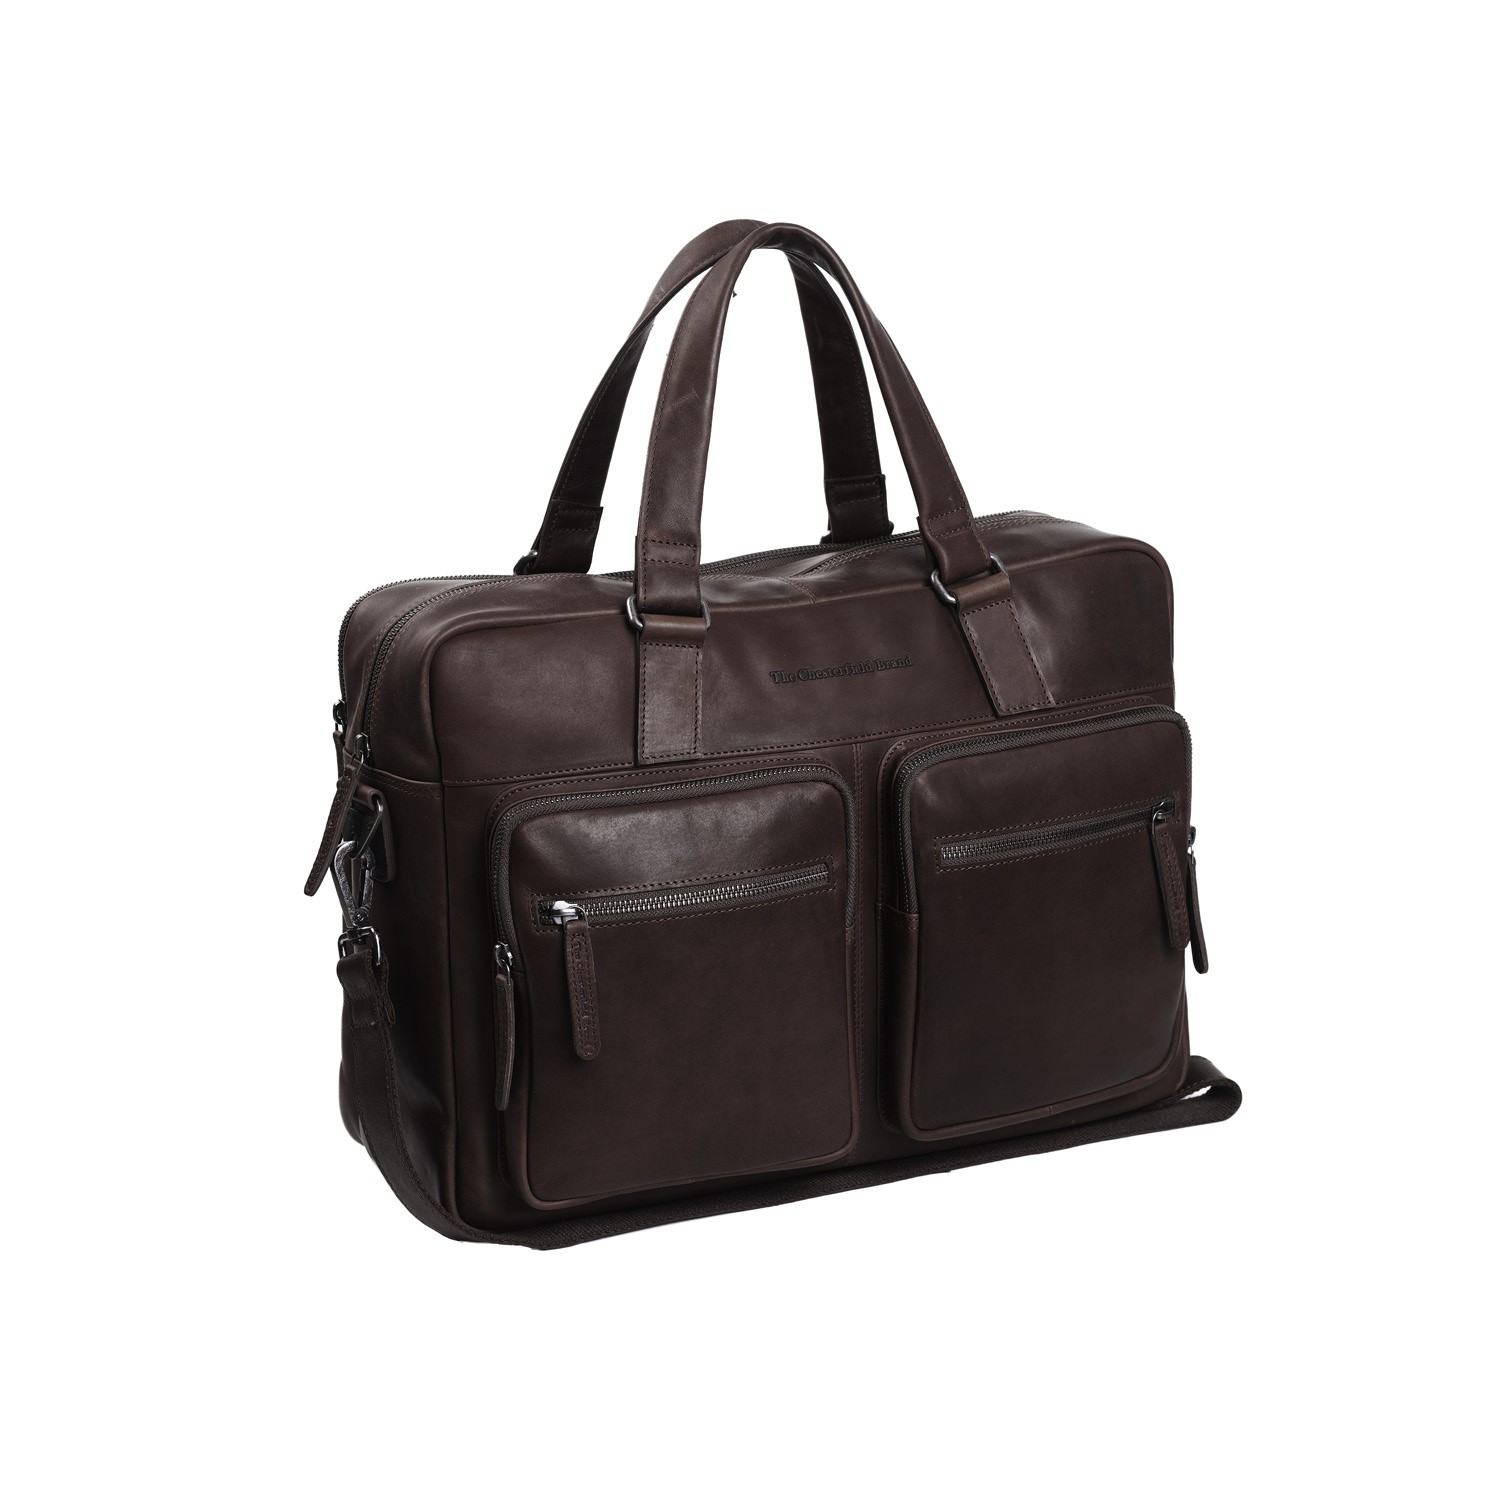 Chesterfield Business tas 'Misha' C40.1034 Brown